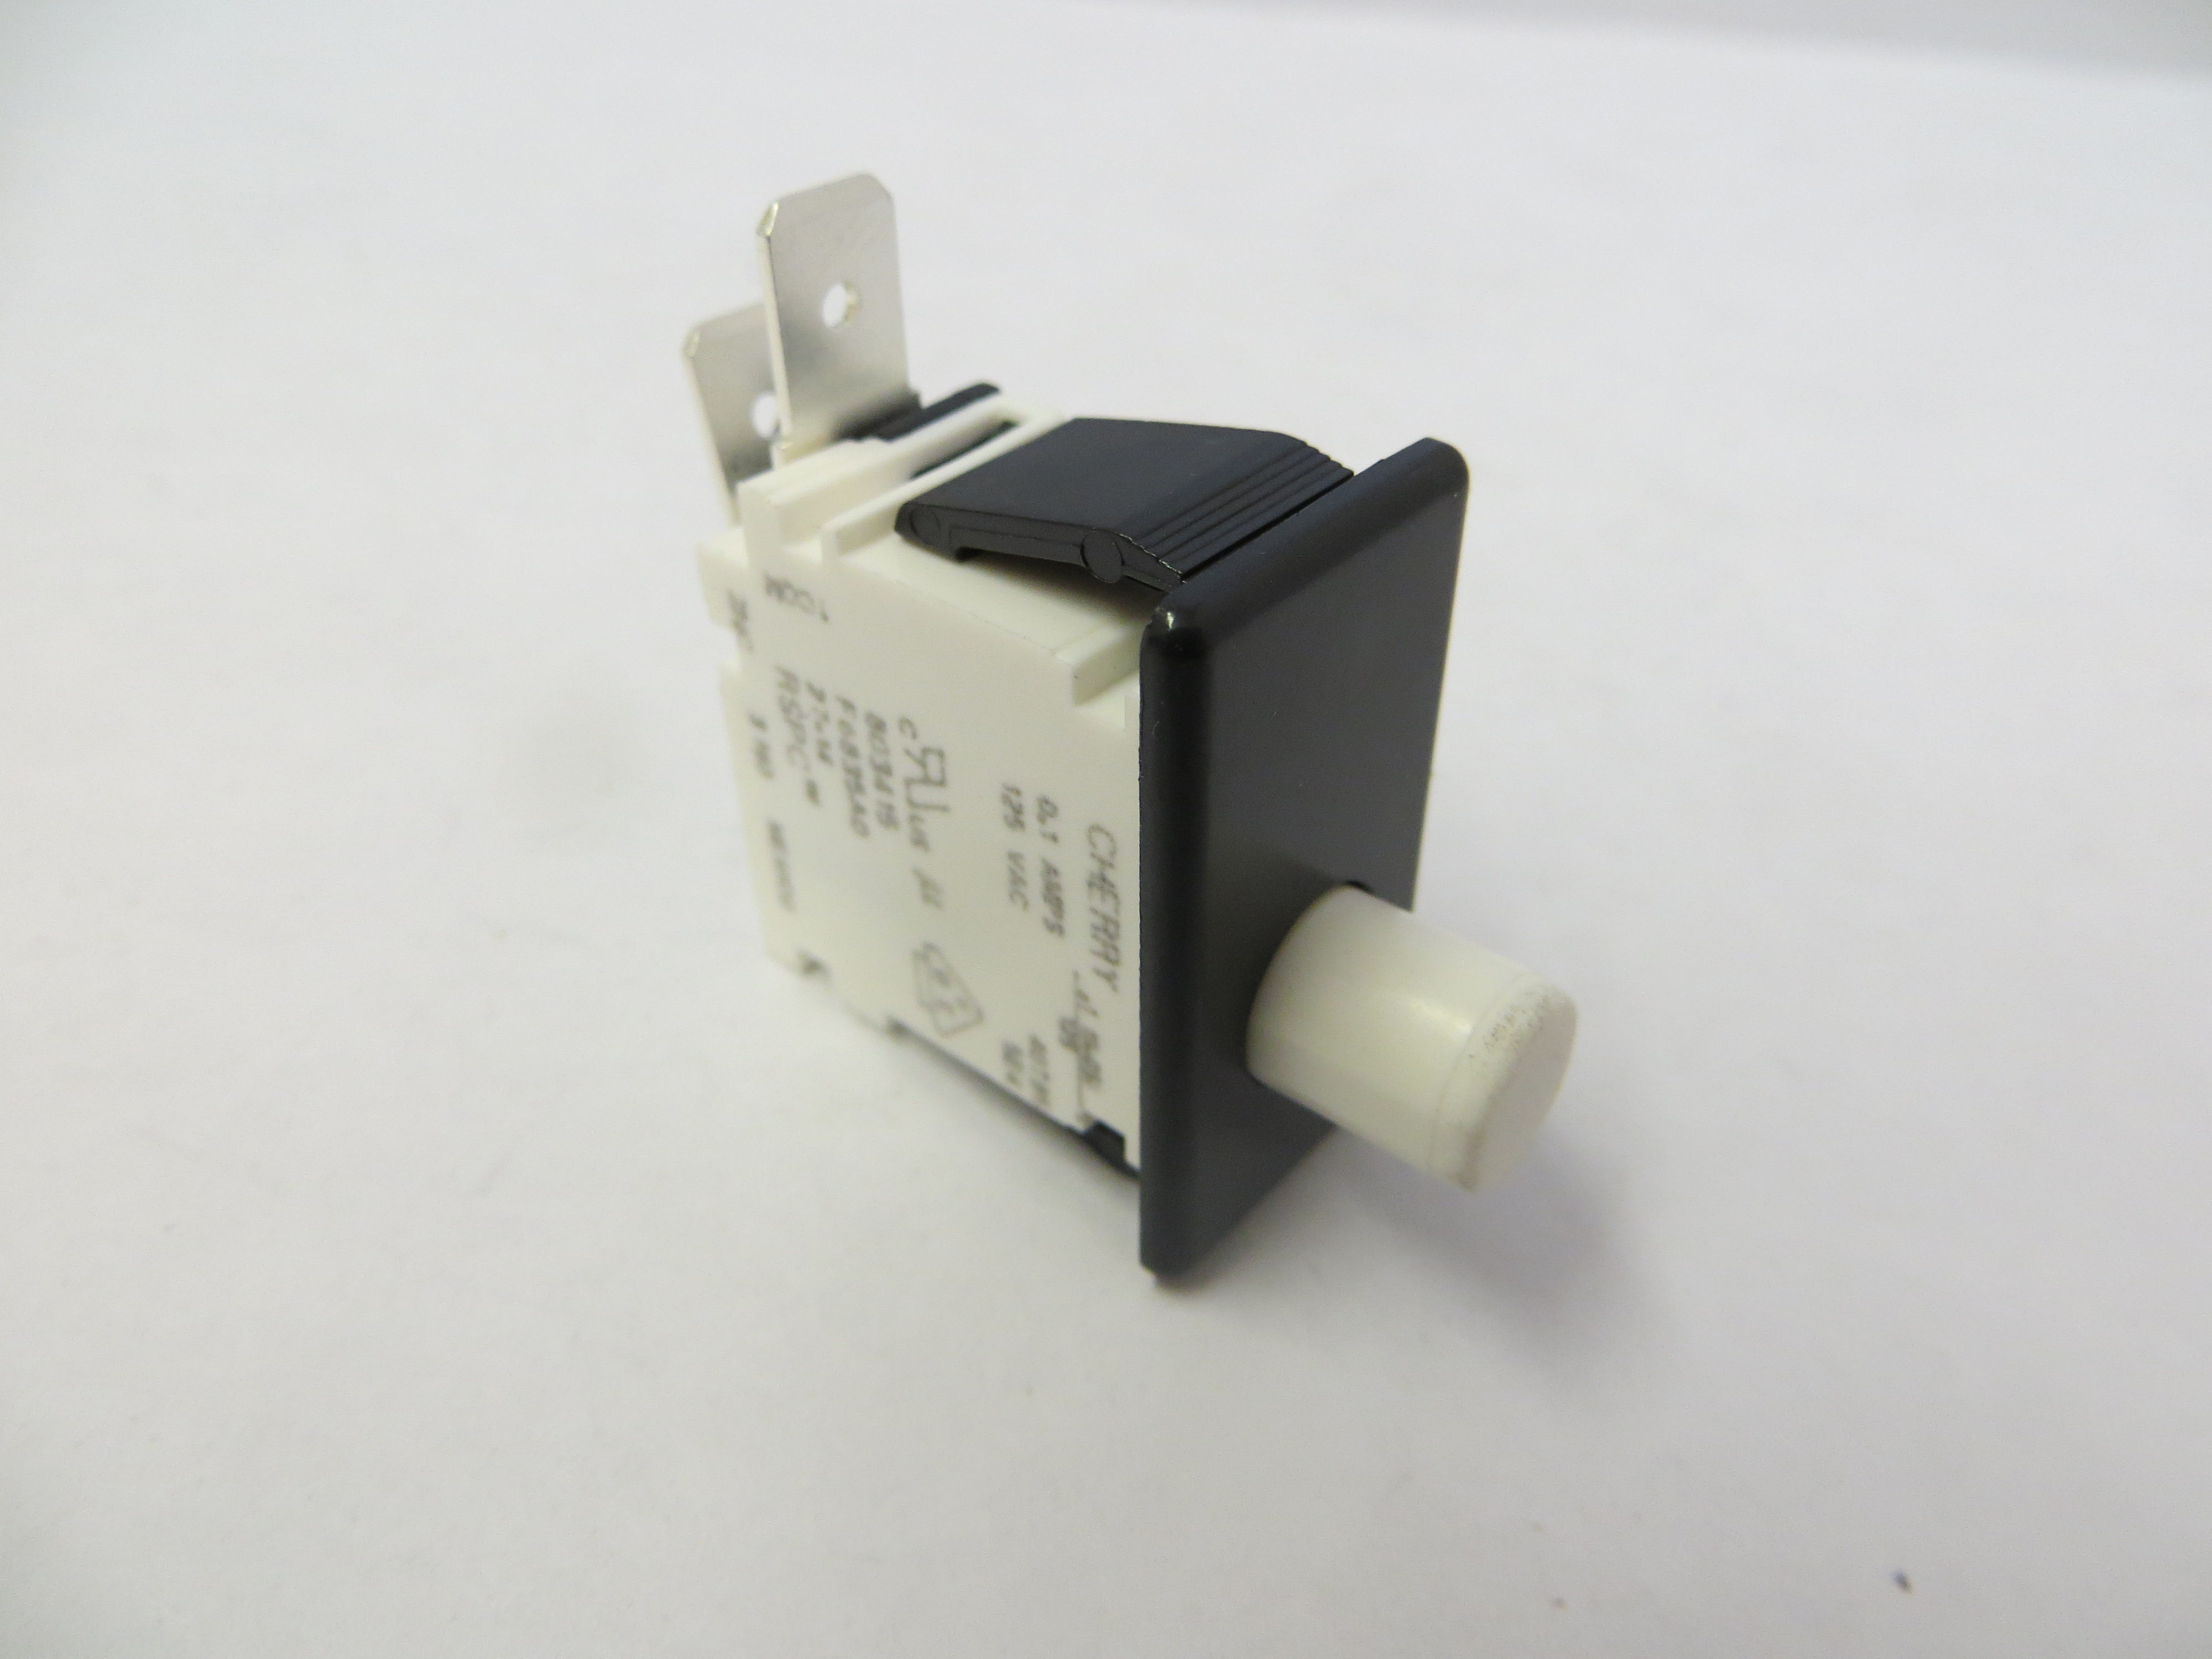 803415 - *Out of Balance Switch